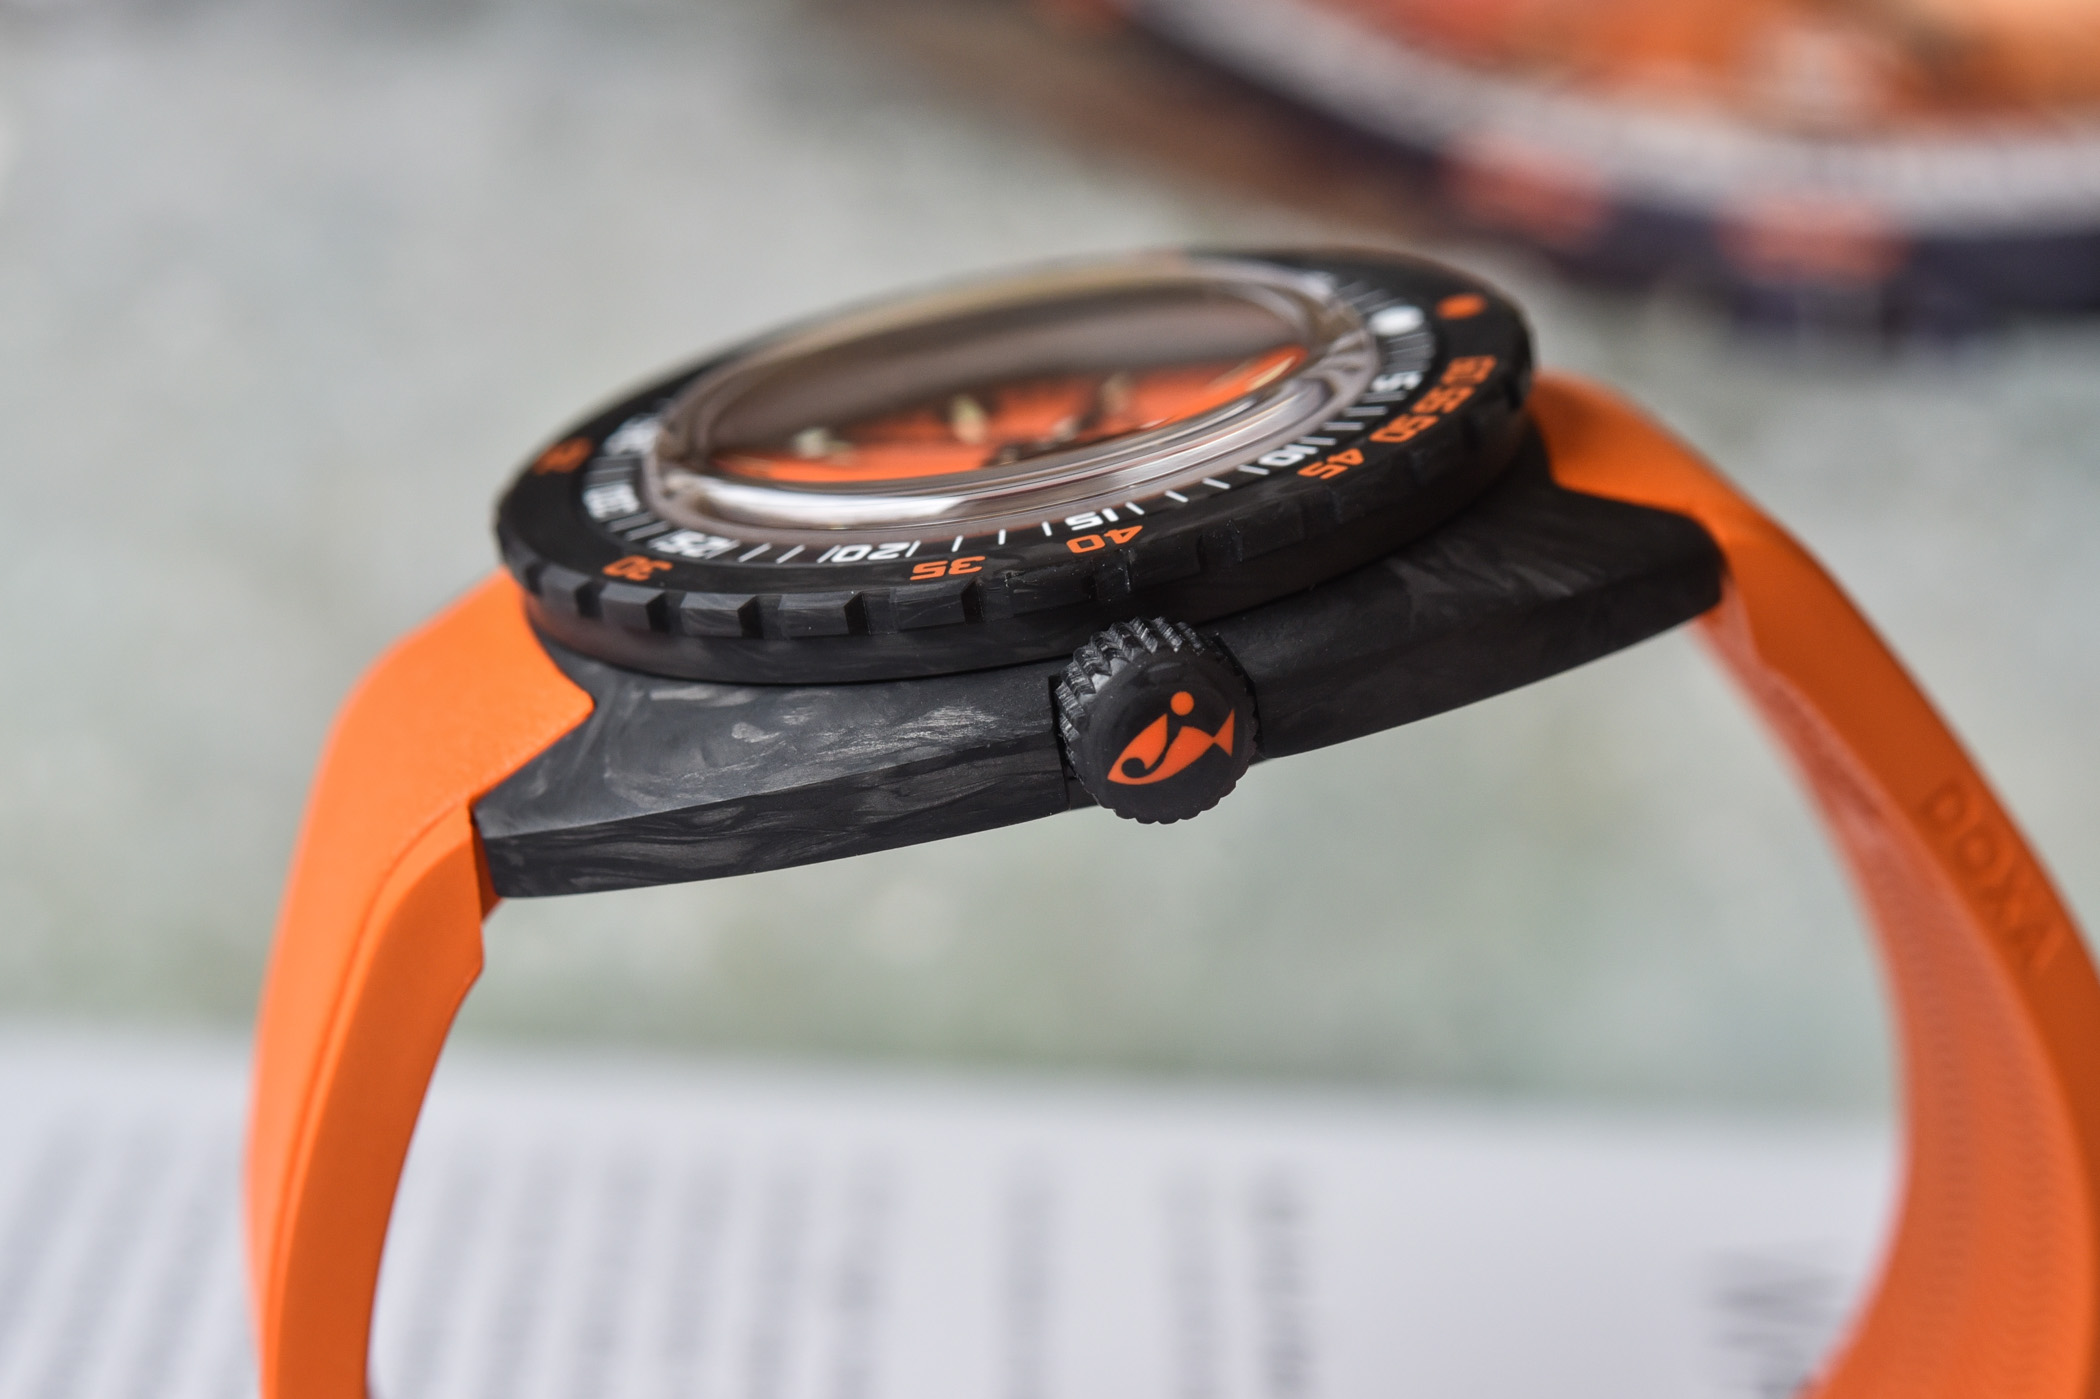 Doxa-SUB-300-Carbon-COSC-Collection-2021-review-1.jpg